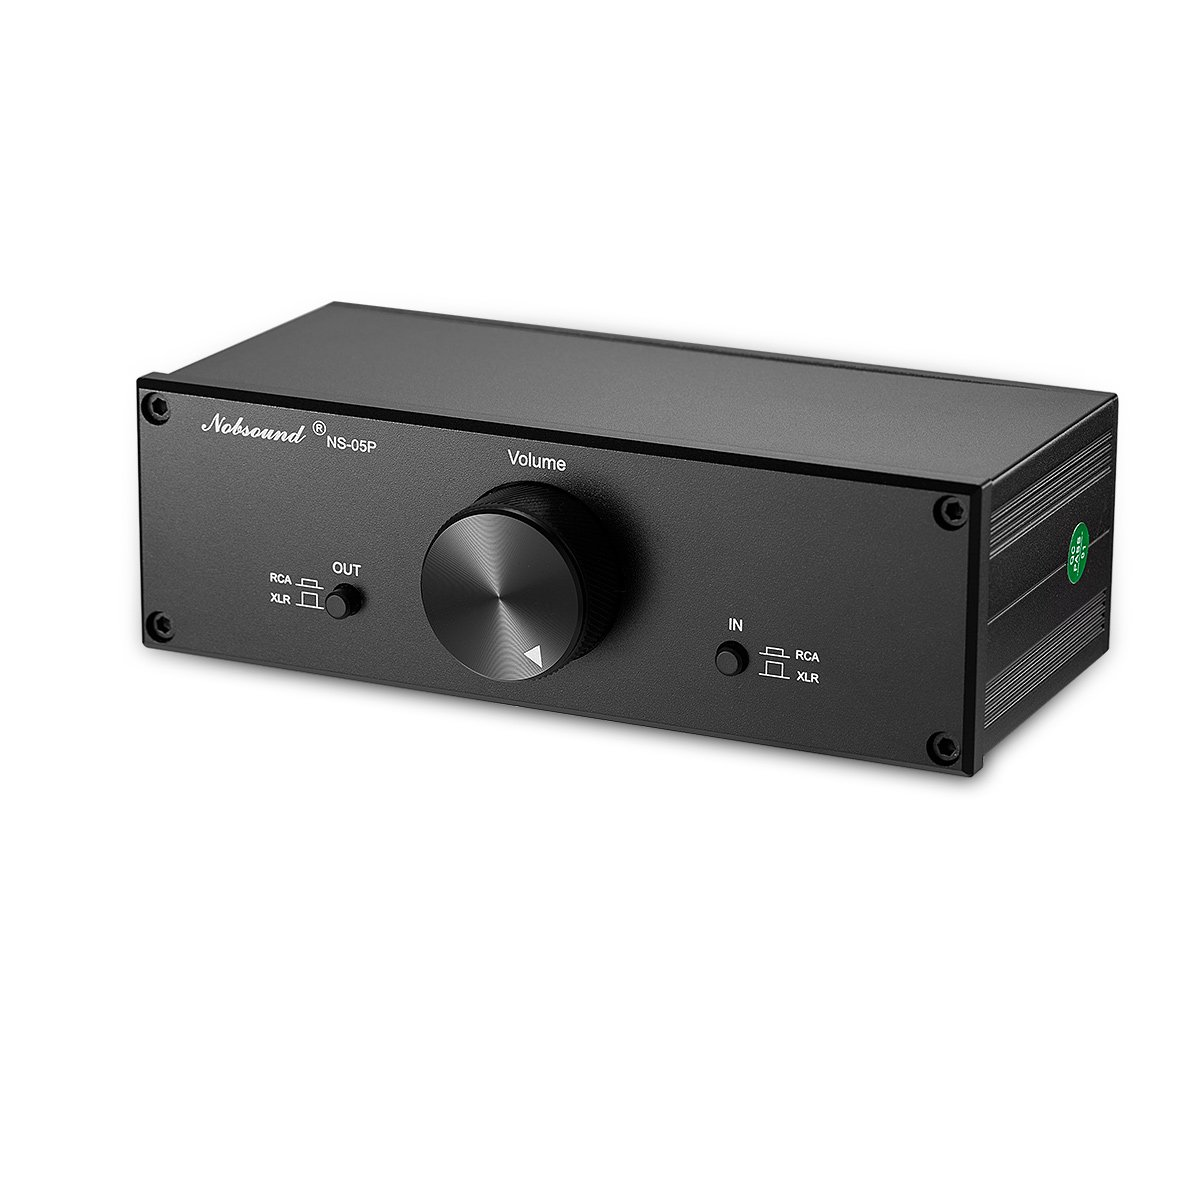 Nobsound Mini Fully-balanced/Single-ended Passive Preamp; Hi-Fi Pre-amplifier; XLR/RCA Volume Controller for Active Monitor Speakers (Black) by Nobsound